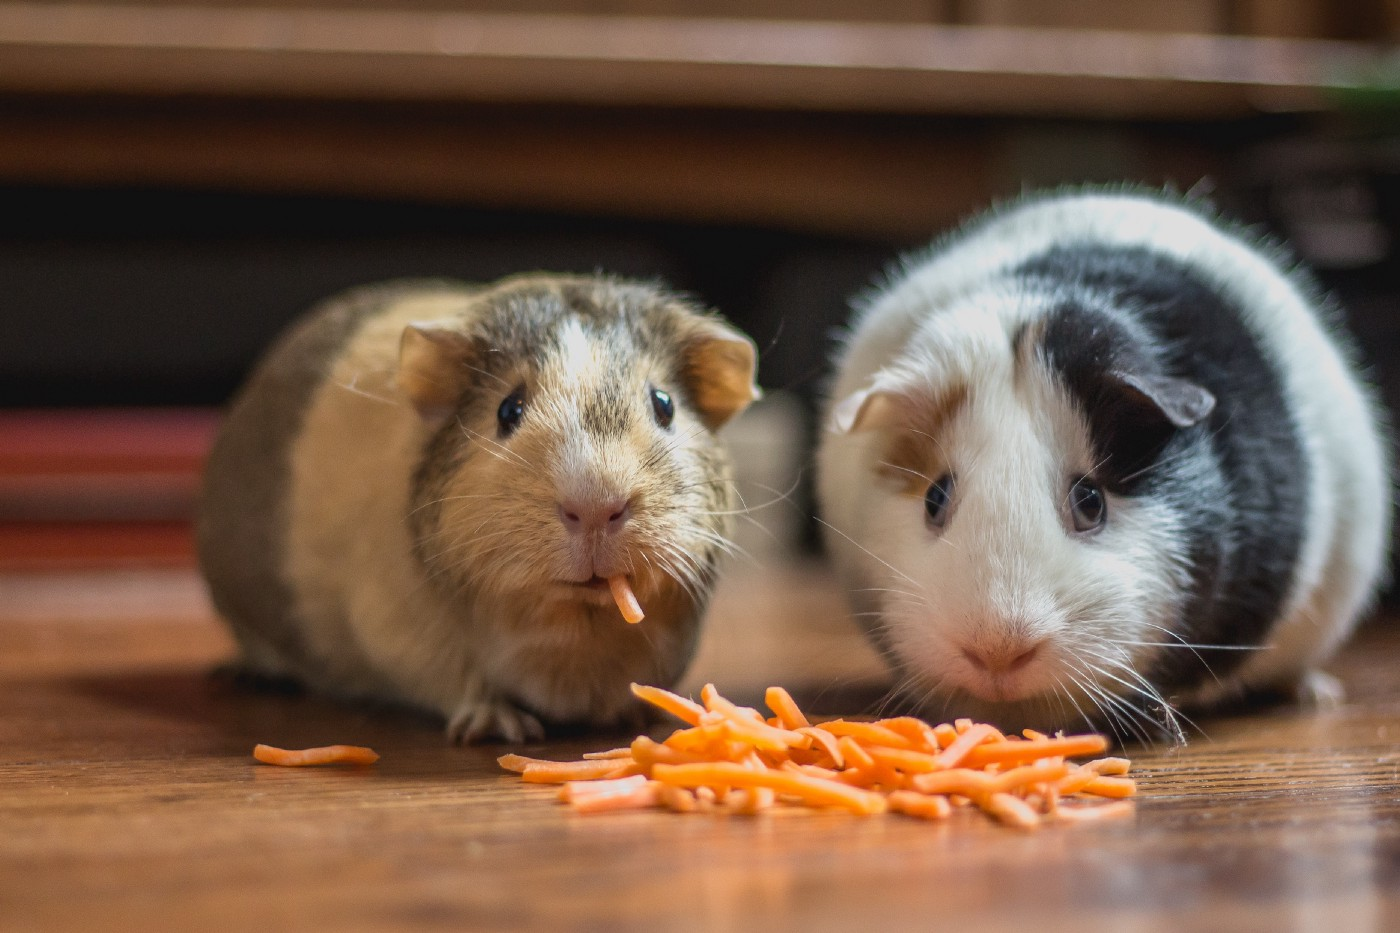 Two hamsters snacking